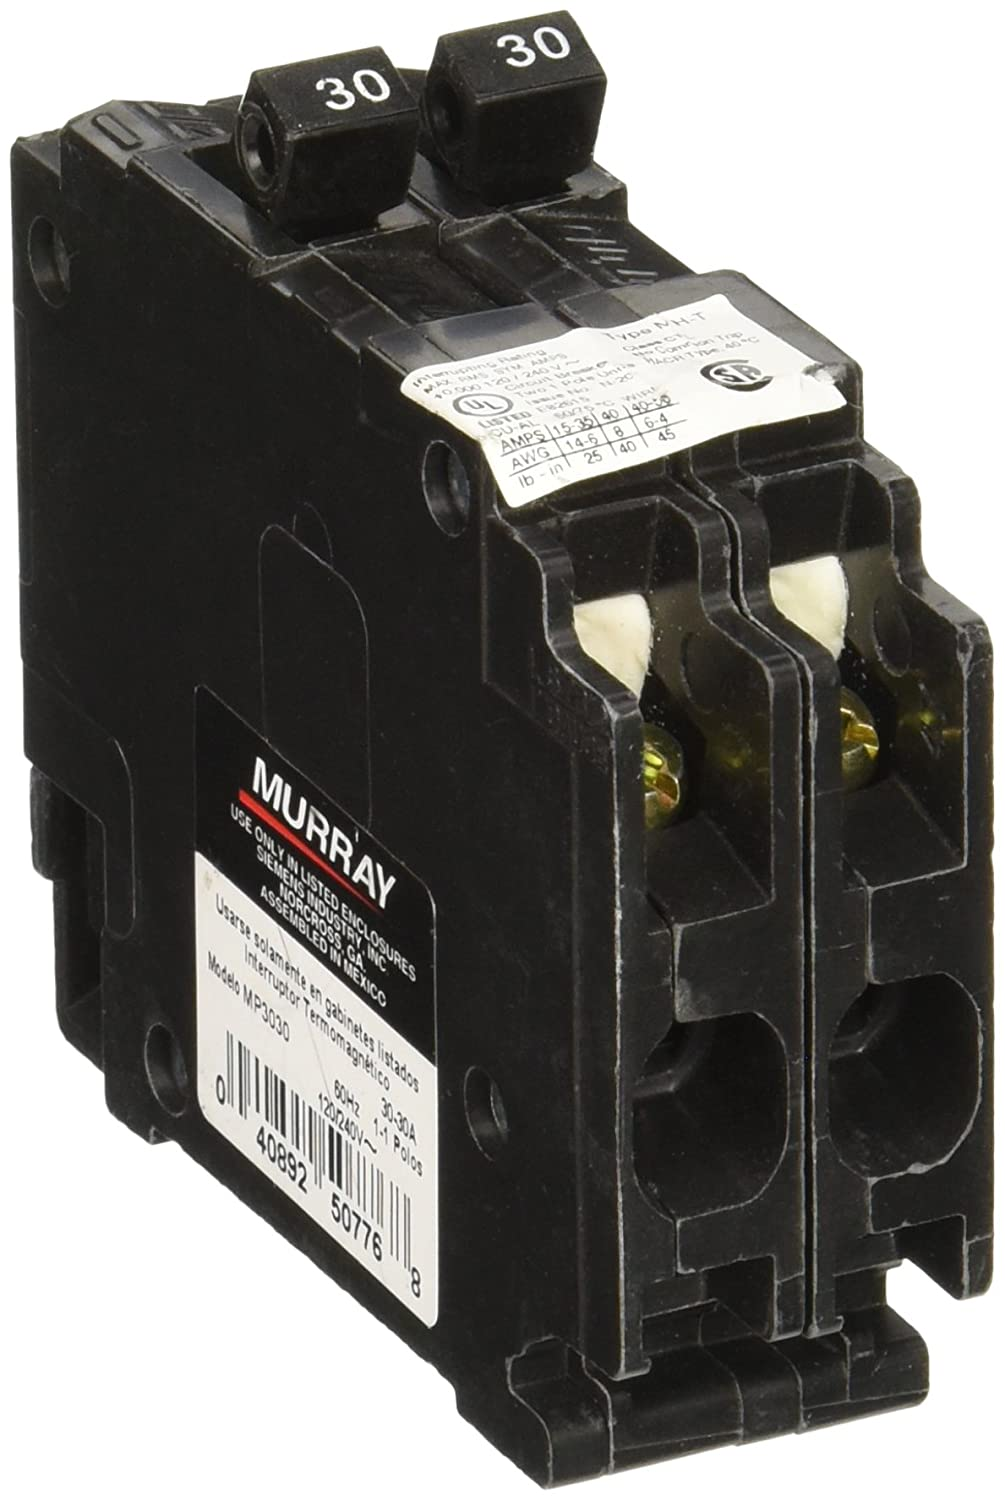 Murray MP3030 twin 30-Amp Single Pole Circuit Breaker